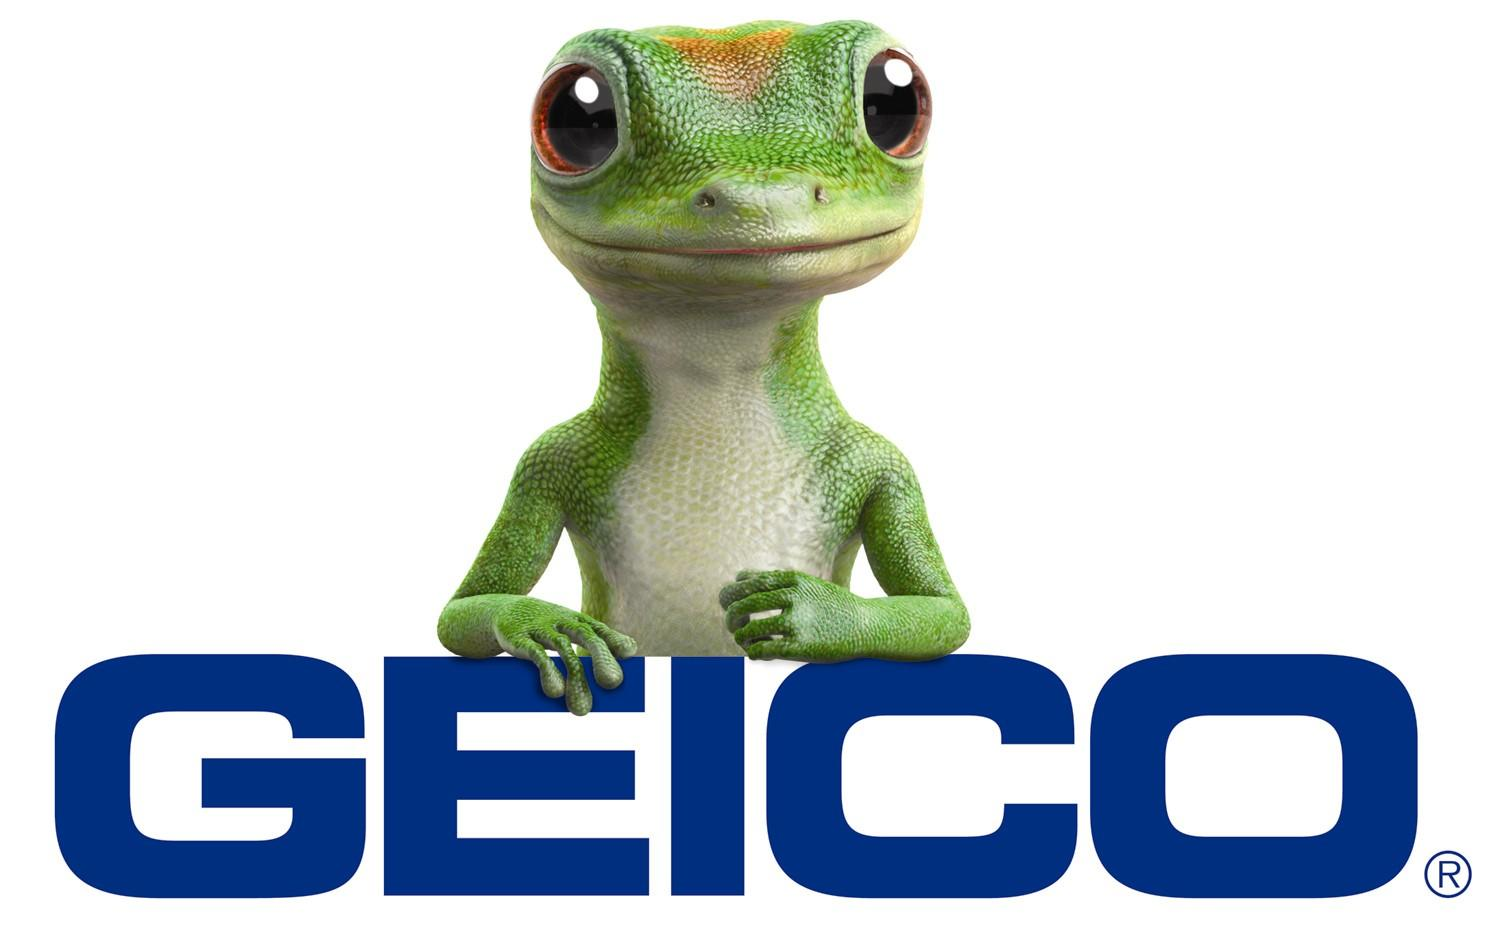 GEICO Wallpapers